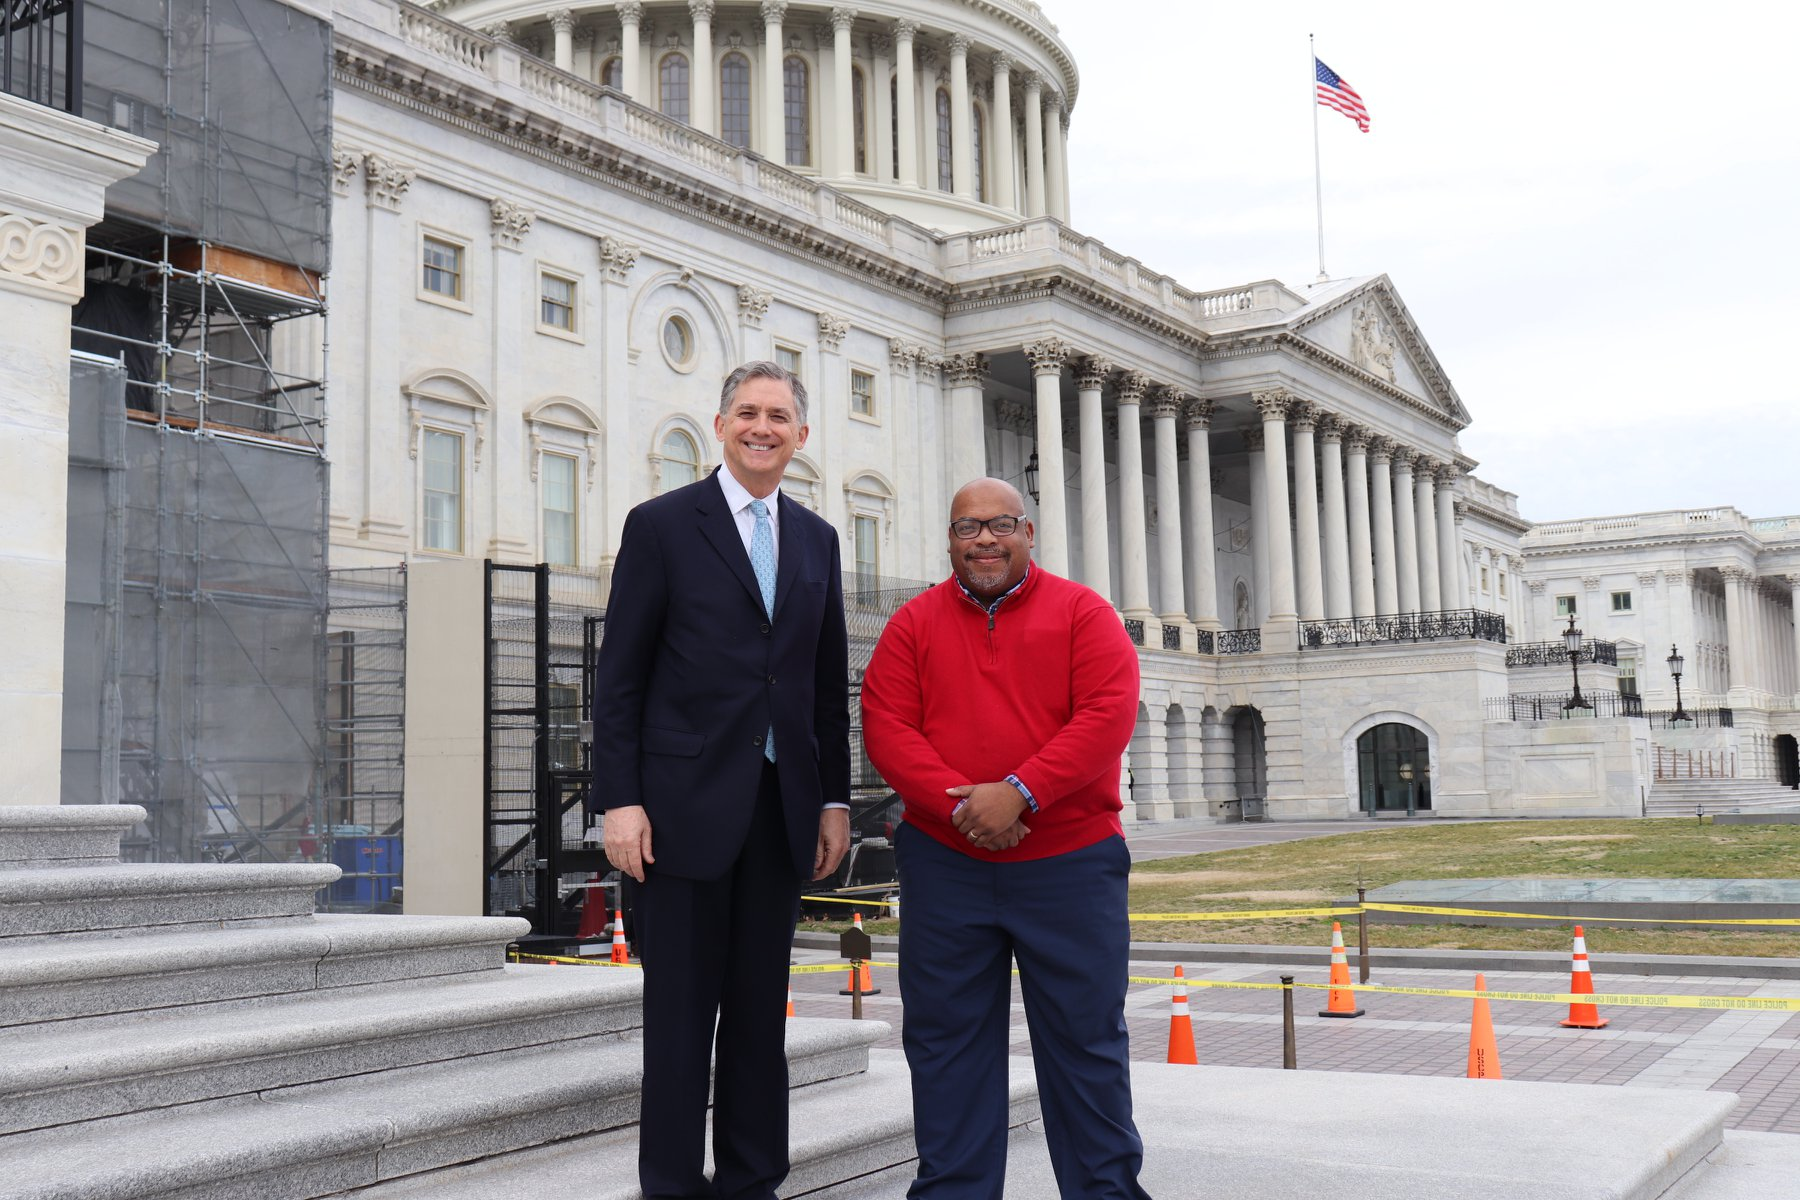 U.S. Rep French Hill, left, and Dr. Brian Mitchell, right, visit the U.S. Capitol Building in Washington, D.C.